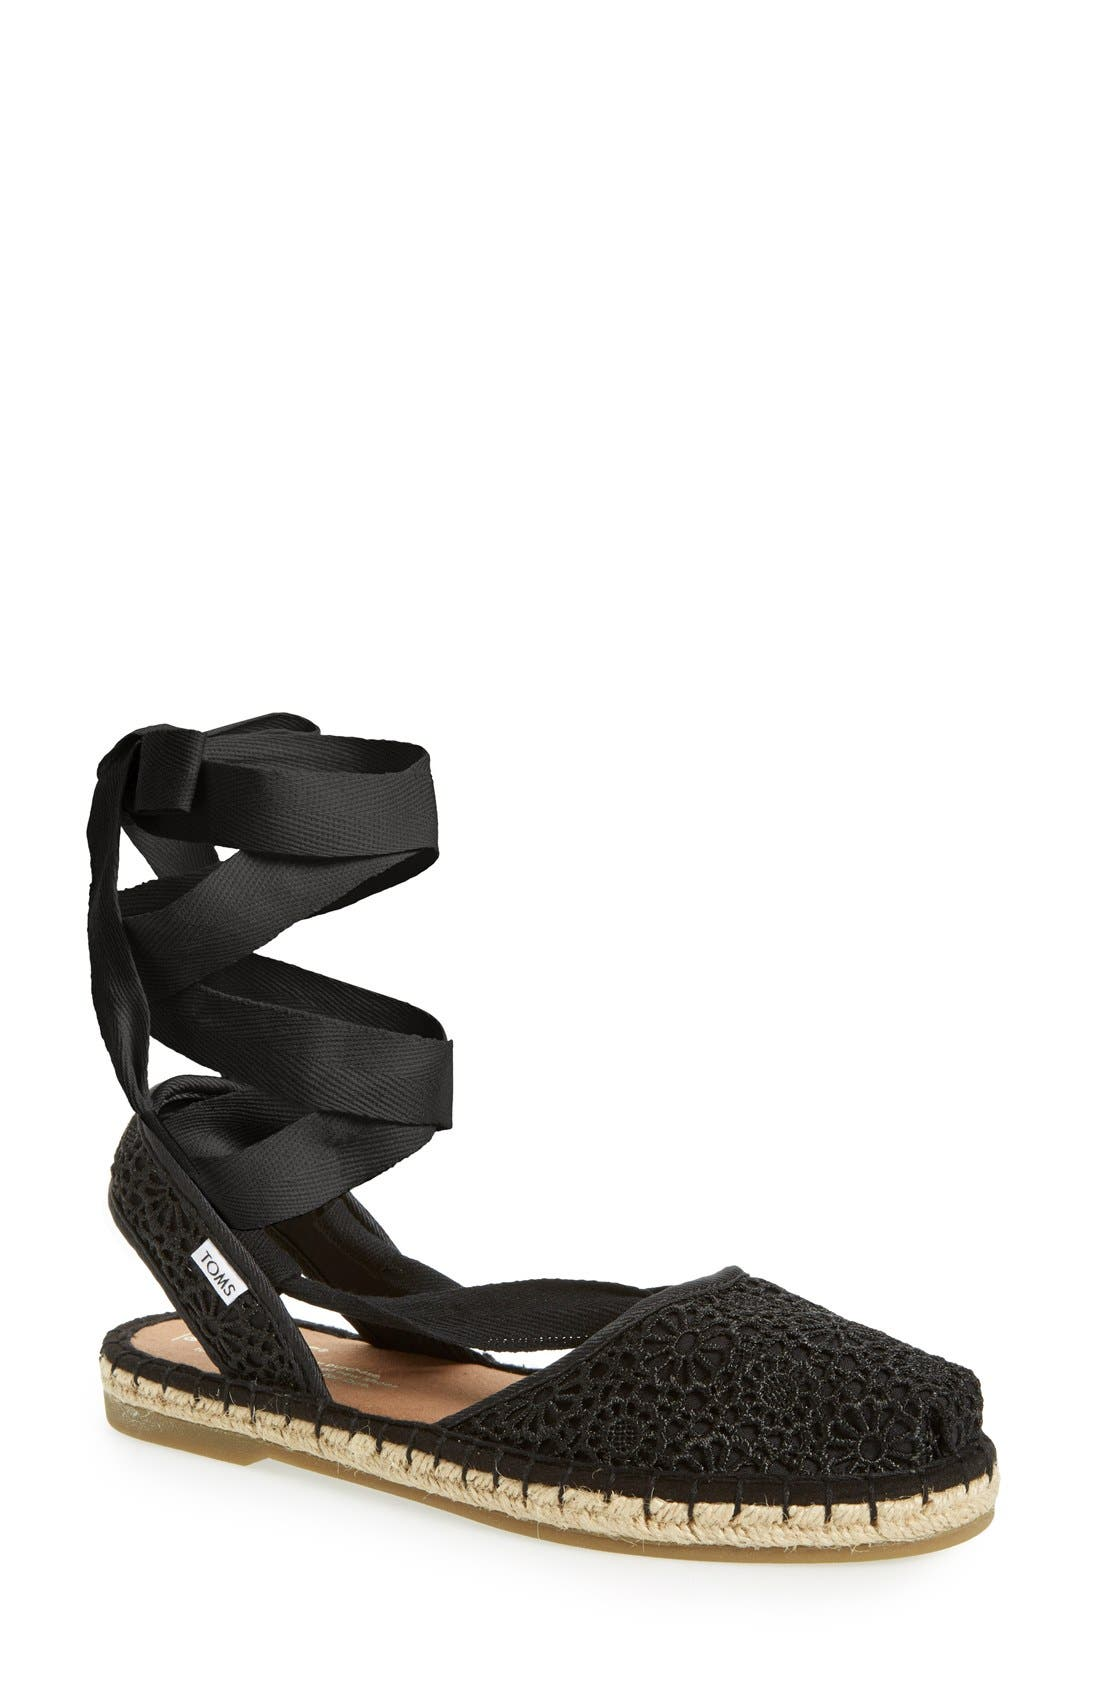 'Bella' Espadrille Sandal,                             Main thumbnail 1, color,                             001